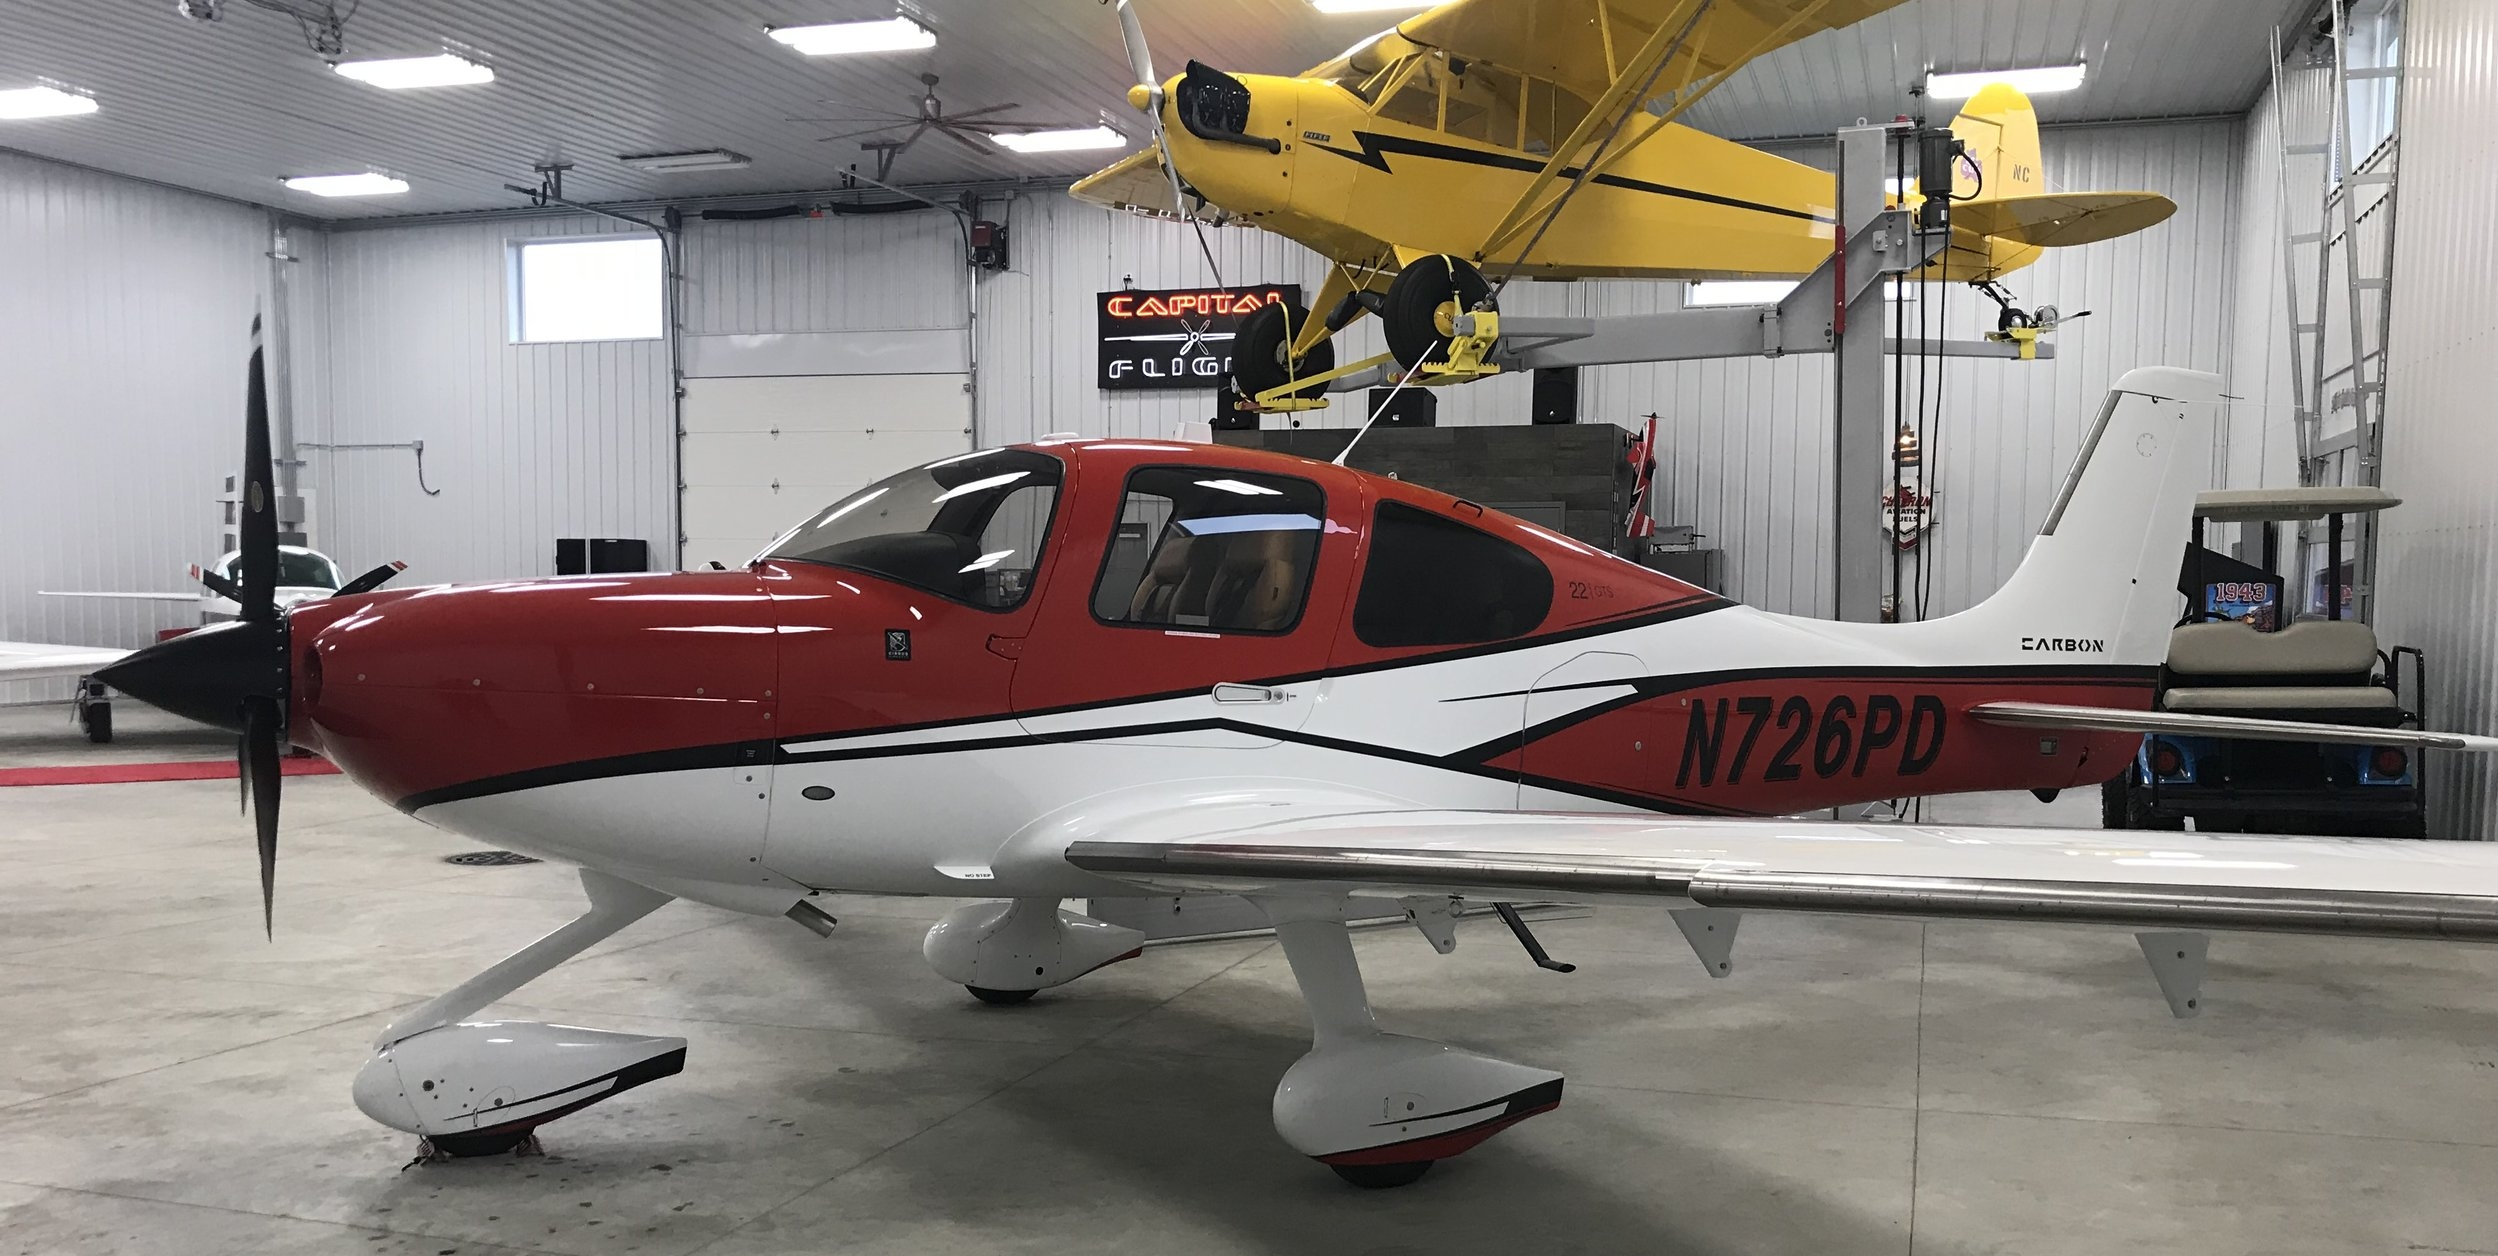 2017 Cirrus SR22 G6 - Available for training and rental